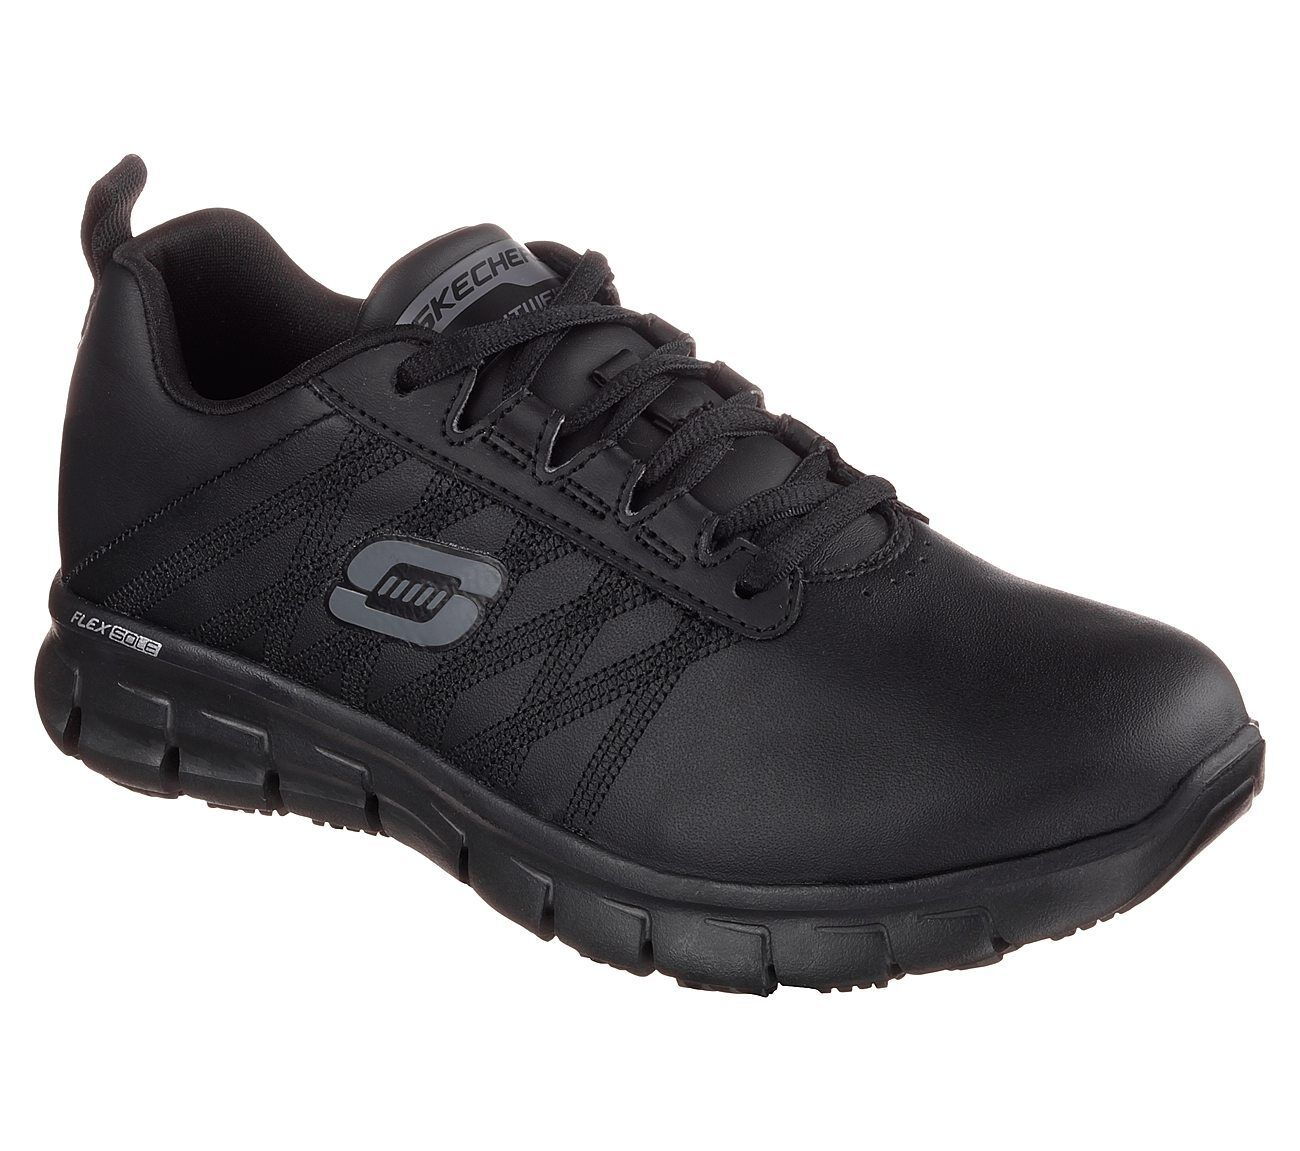 Skechers Skechers Skechers Work Relaxed Fit Sure Track Erath Femme Chaussures Antidérapant Cuir | Pas Cher